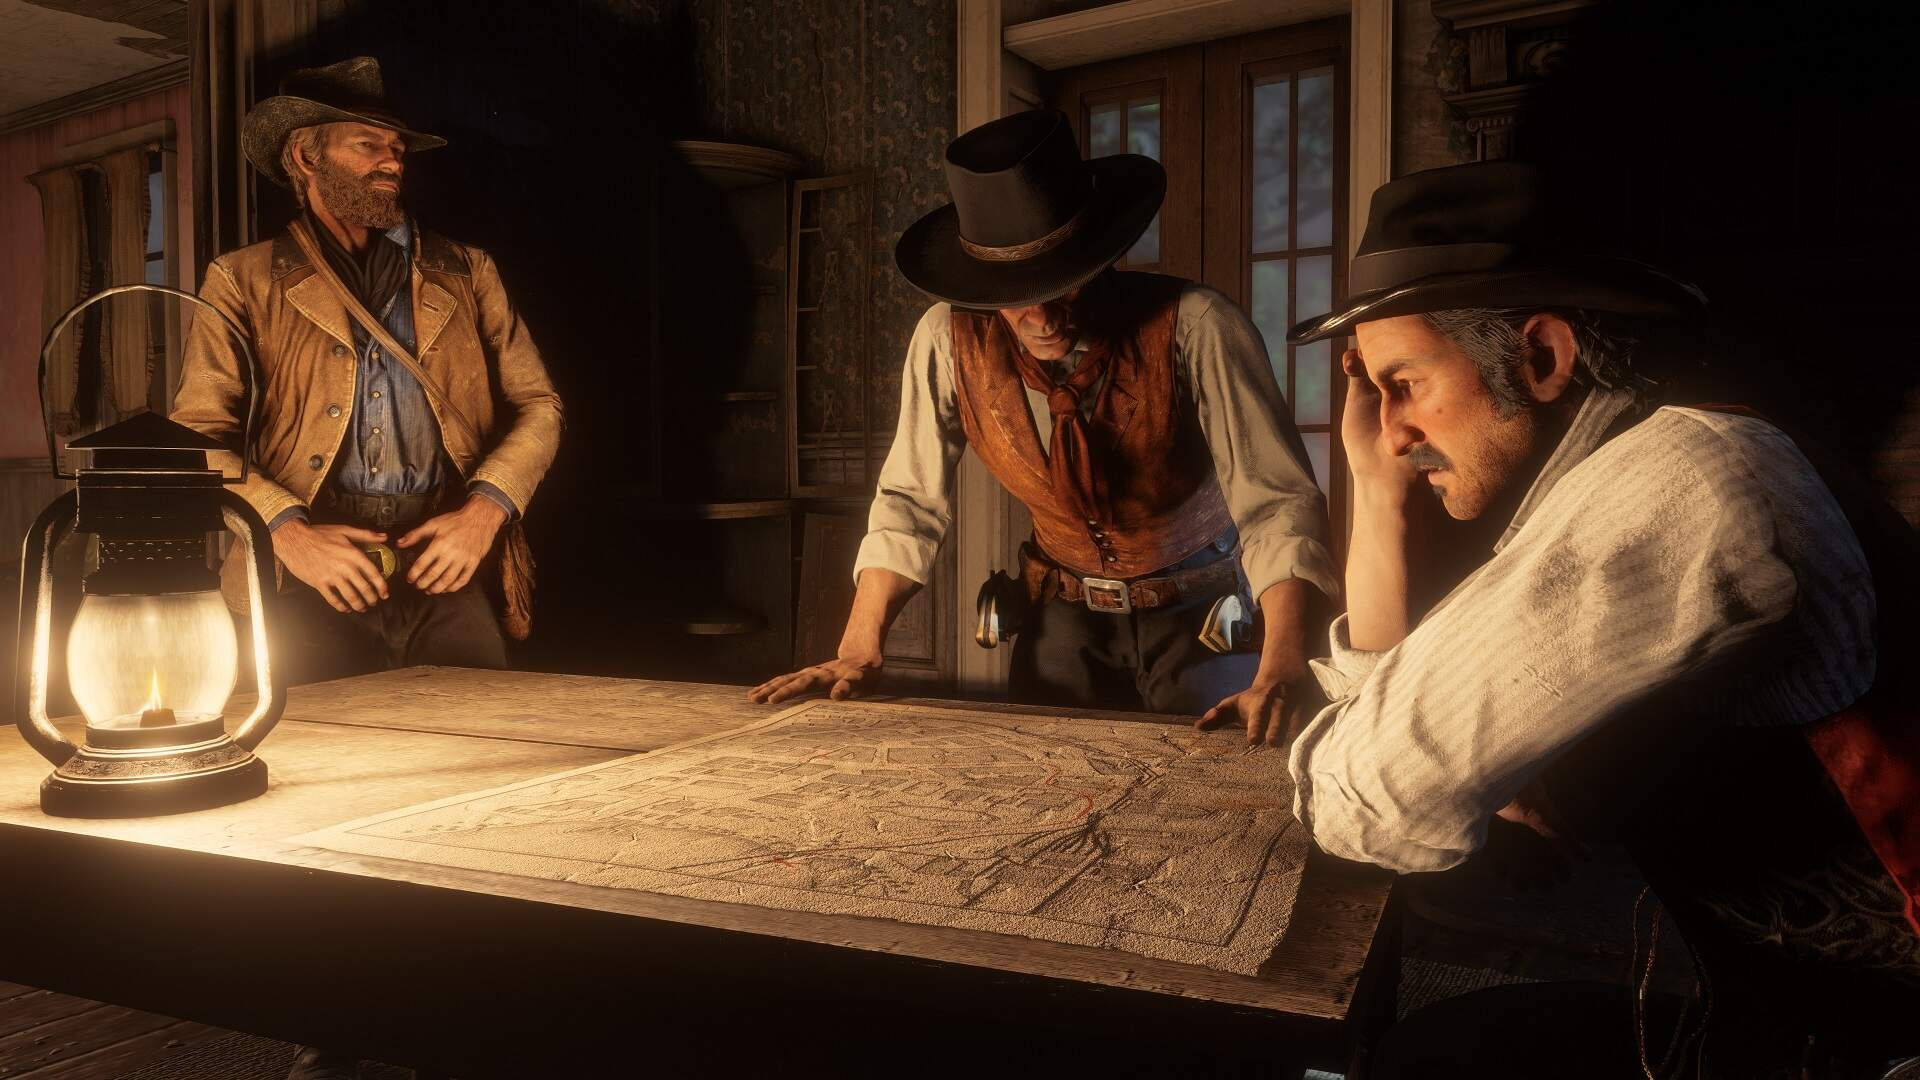 Red Dead Redemption 2 Comes to Xbox Game Pass Next Month, as GTA 5 Leaves